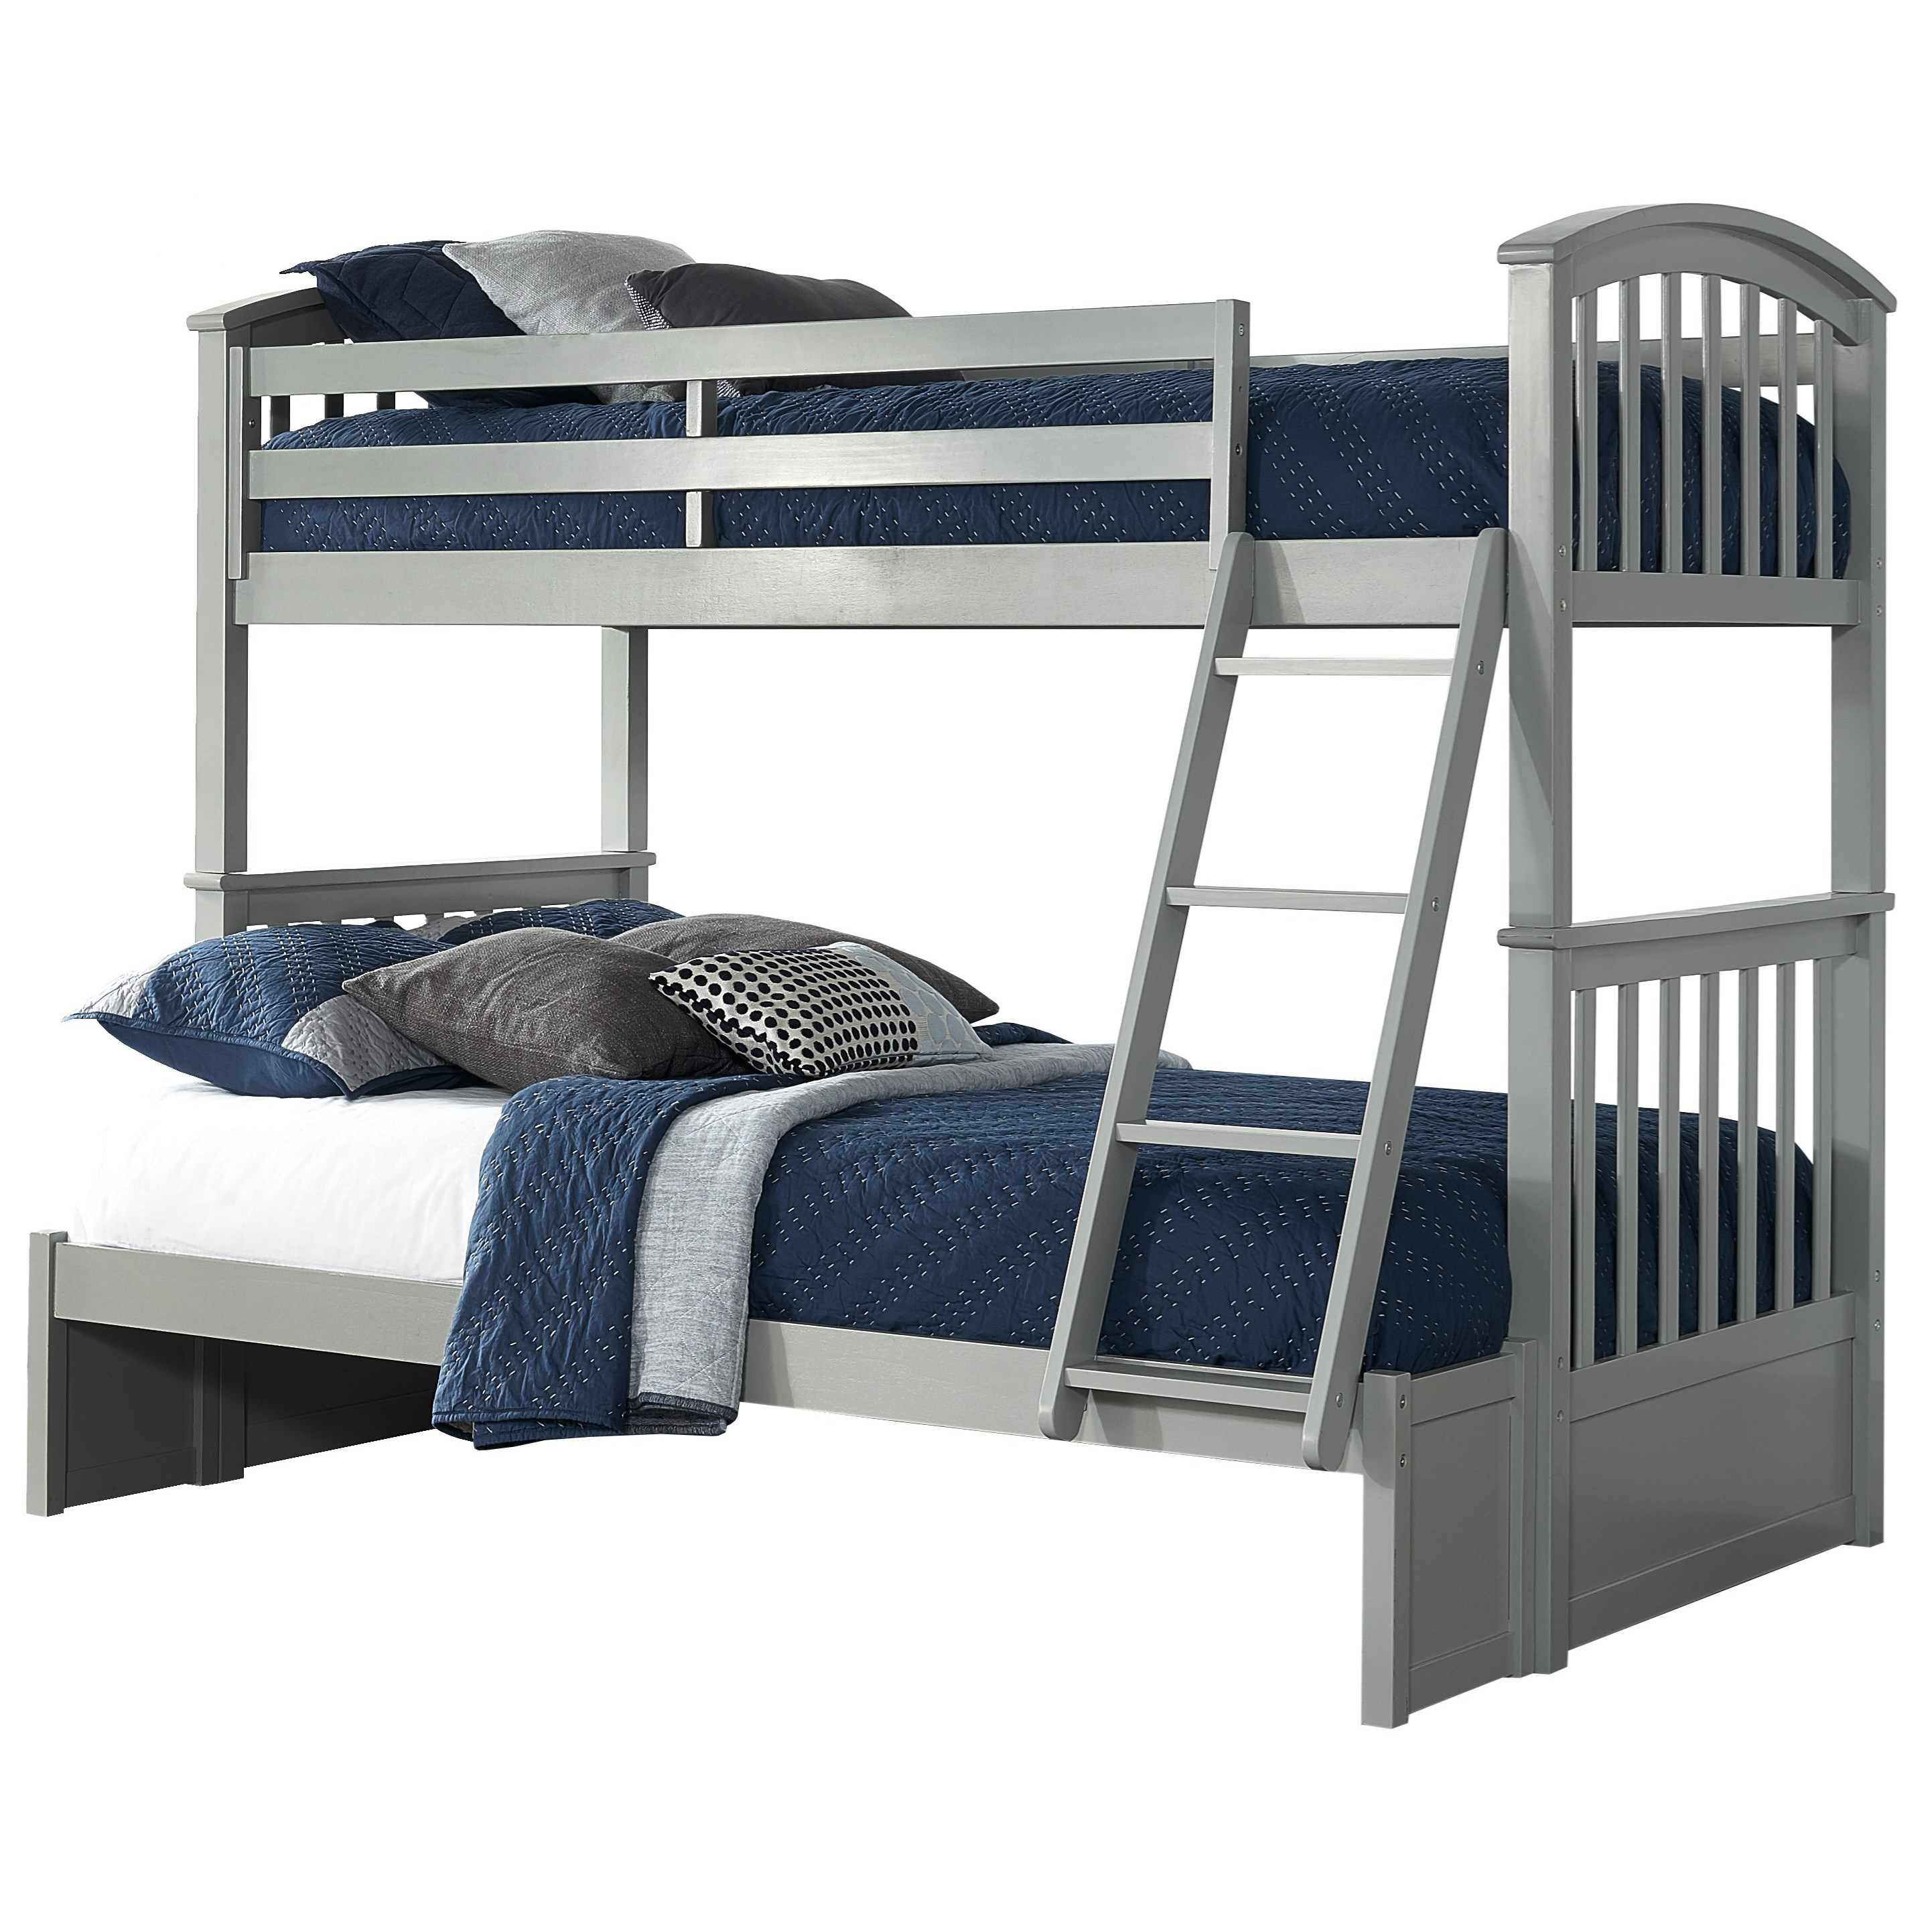 Schoolhouse 4.0 Twin Over Full Bunk Bed by NE Kids at Darvin Furniture